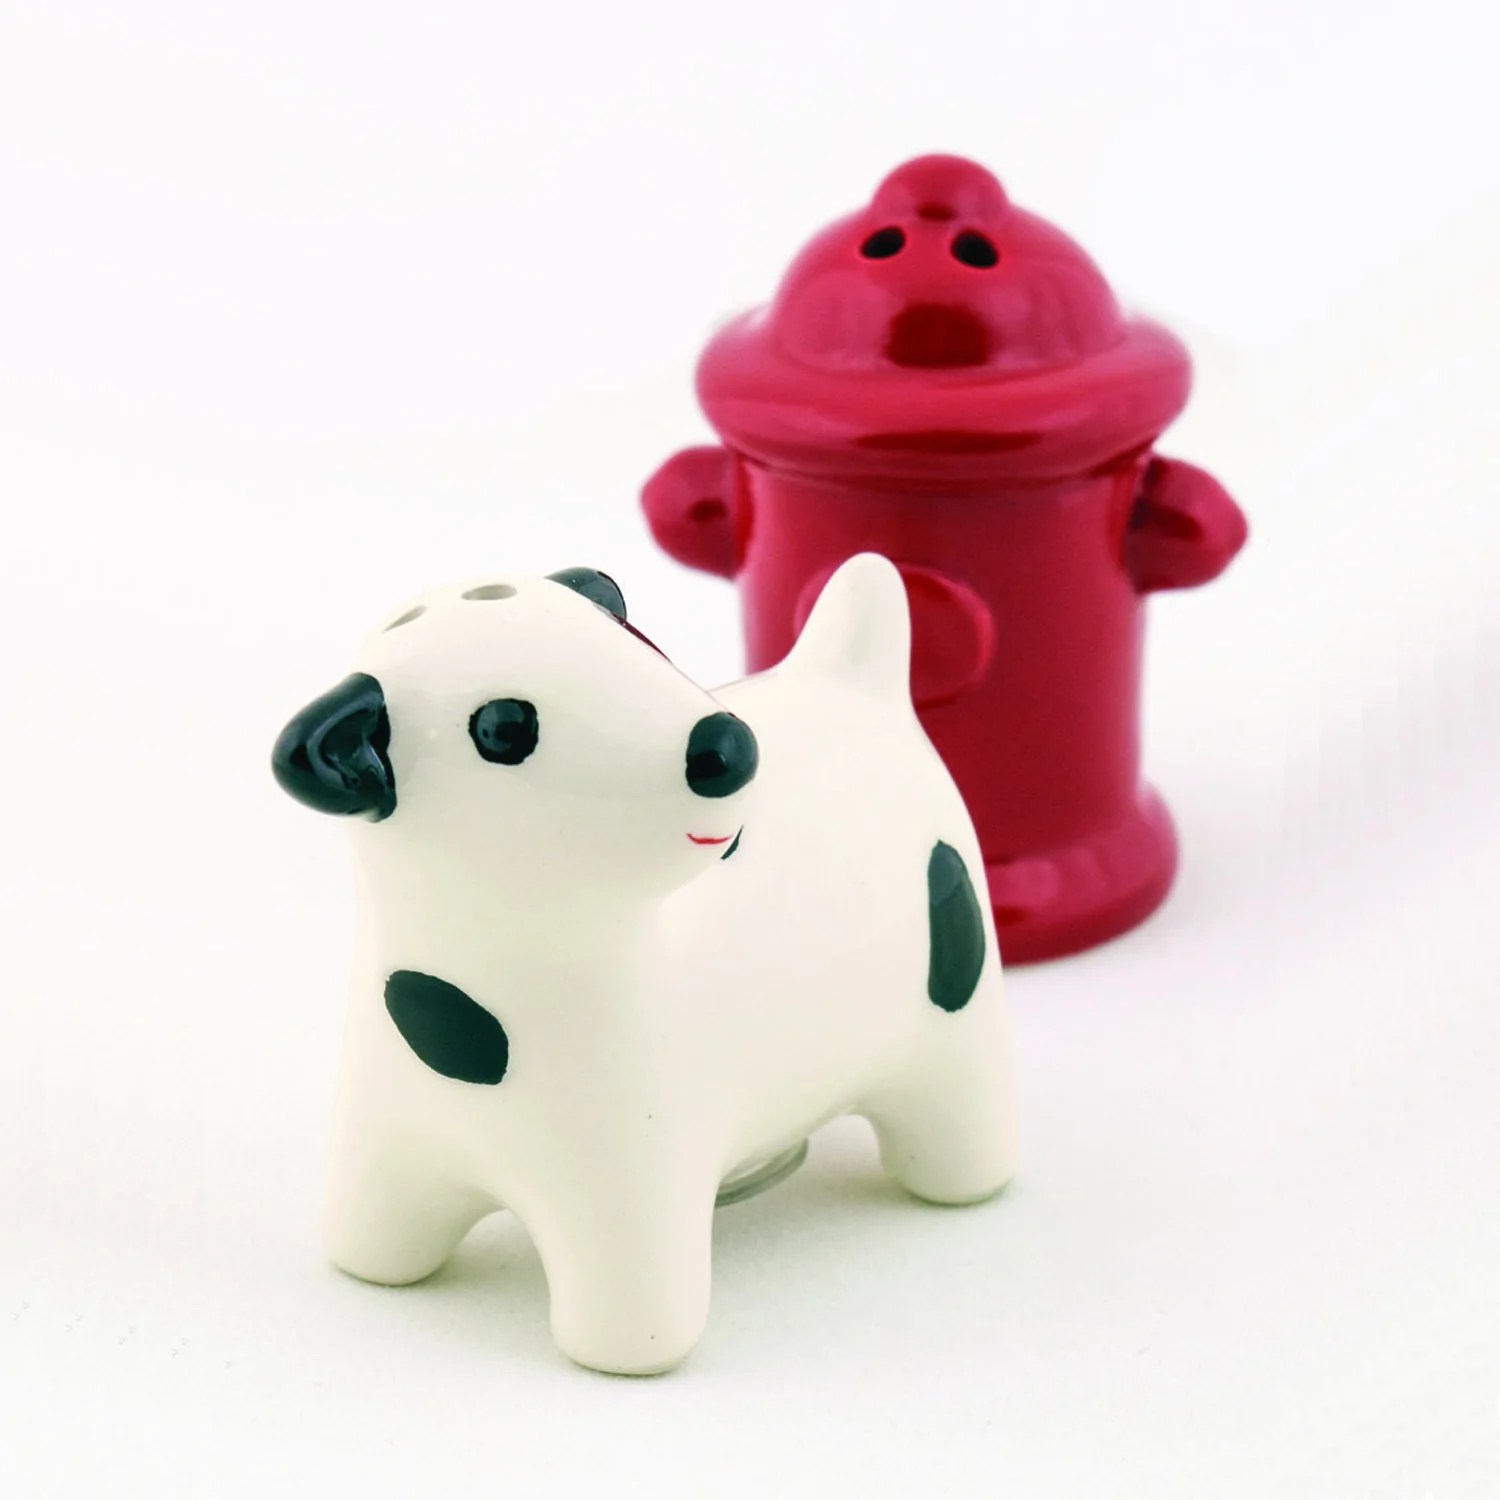 Cheap Salt Shakers Dog Ceramic Salt And Pepper Shakers Dii Design Imports